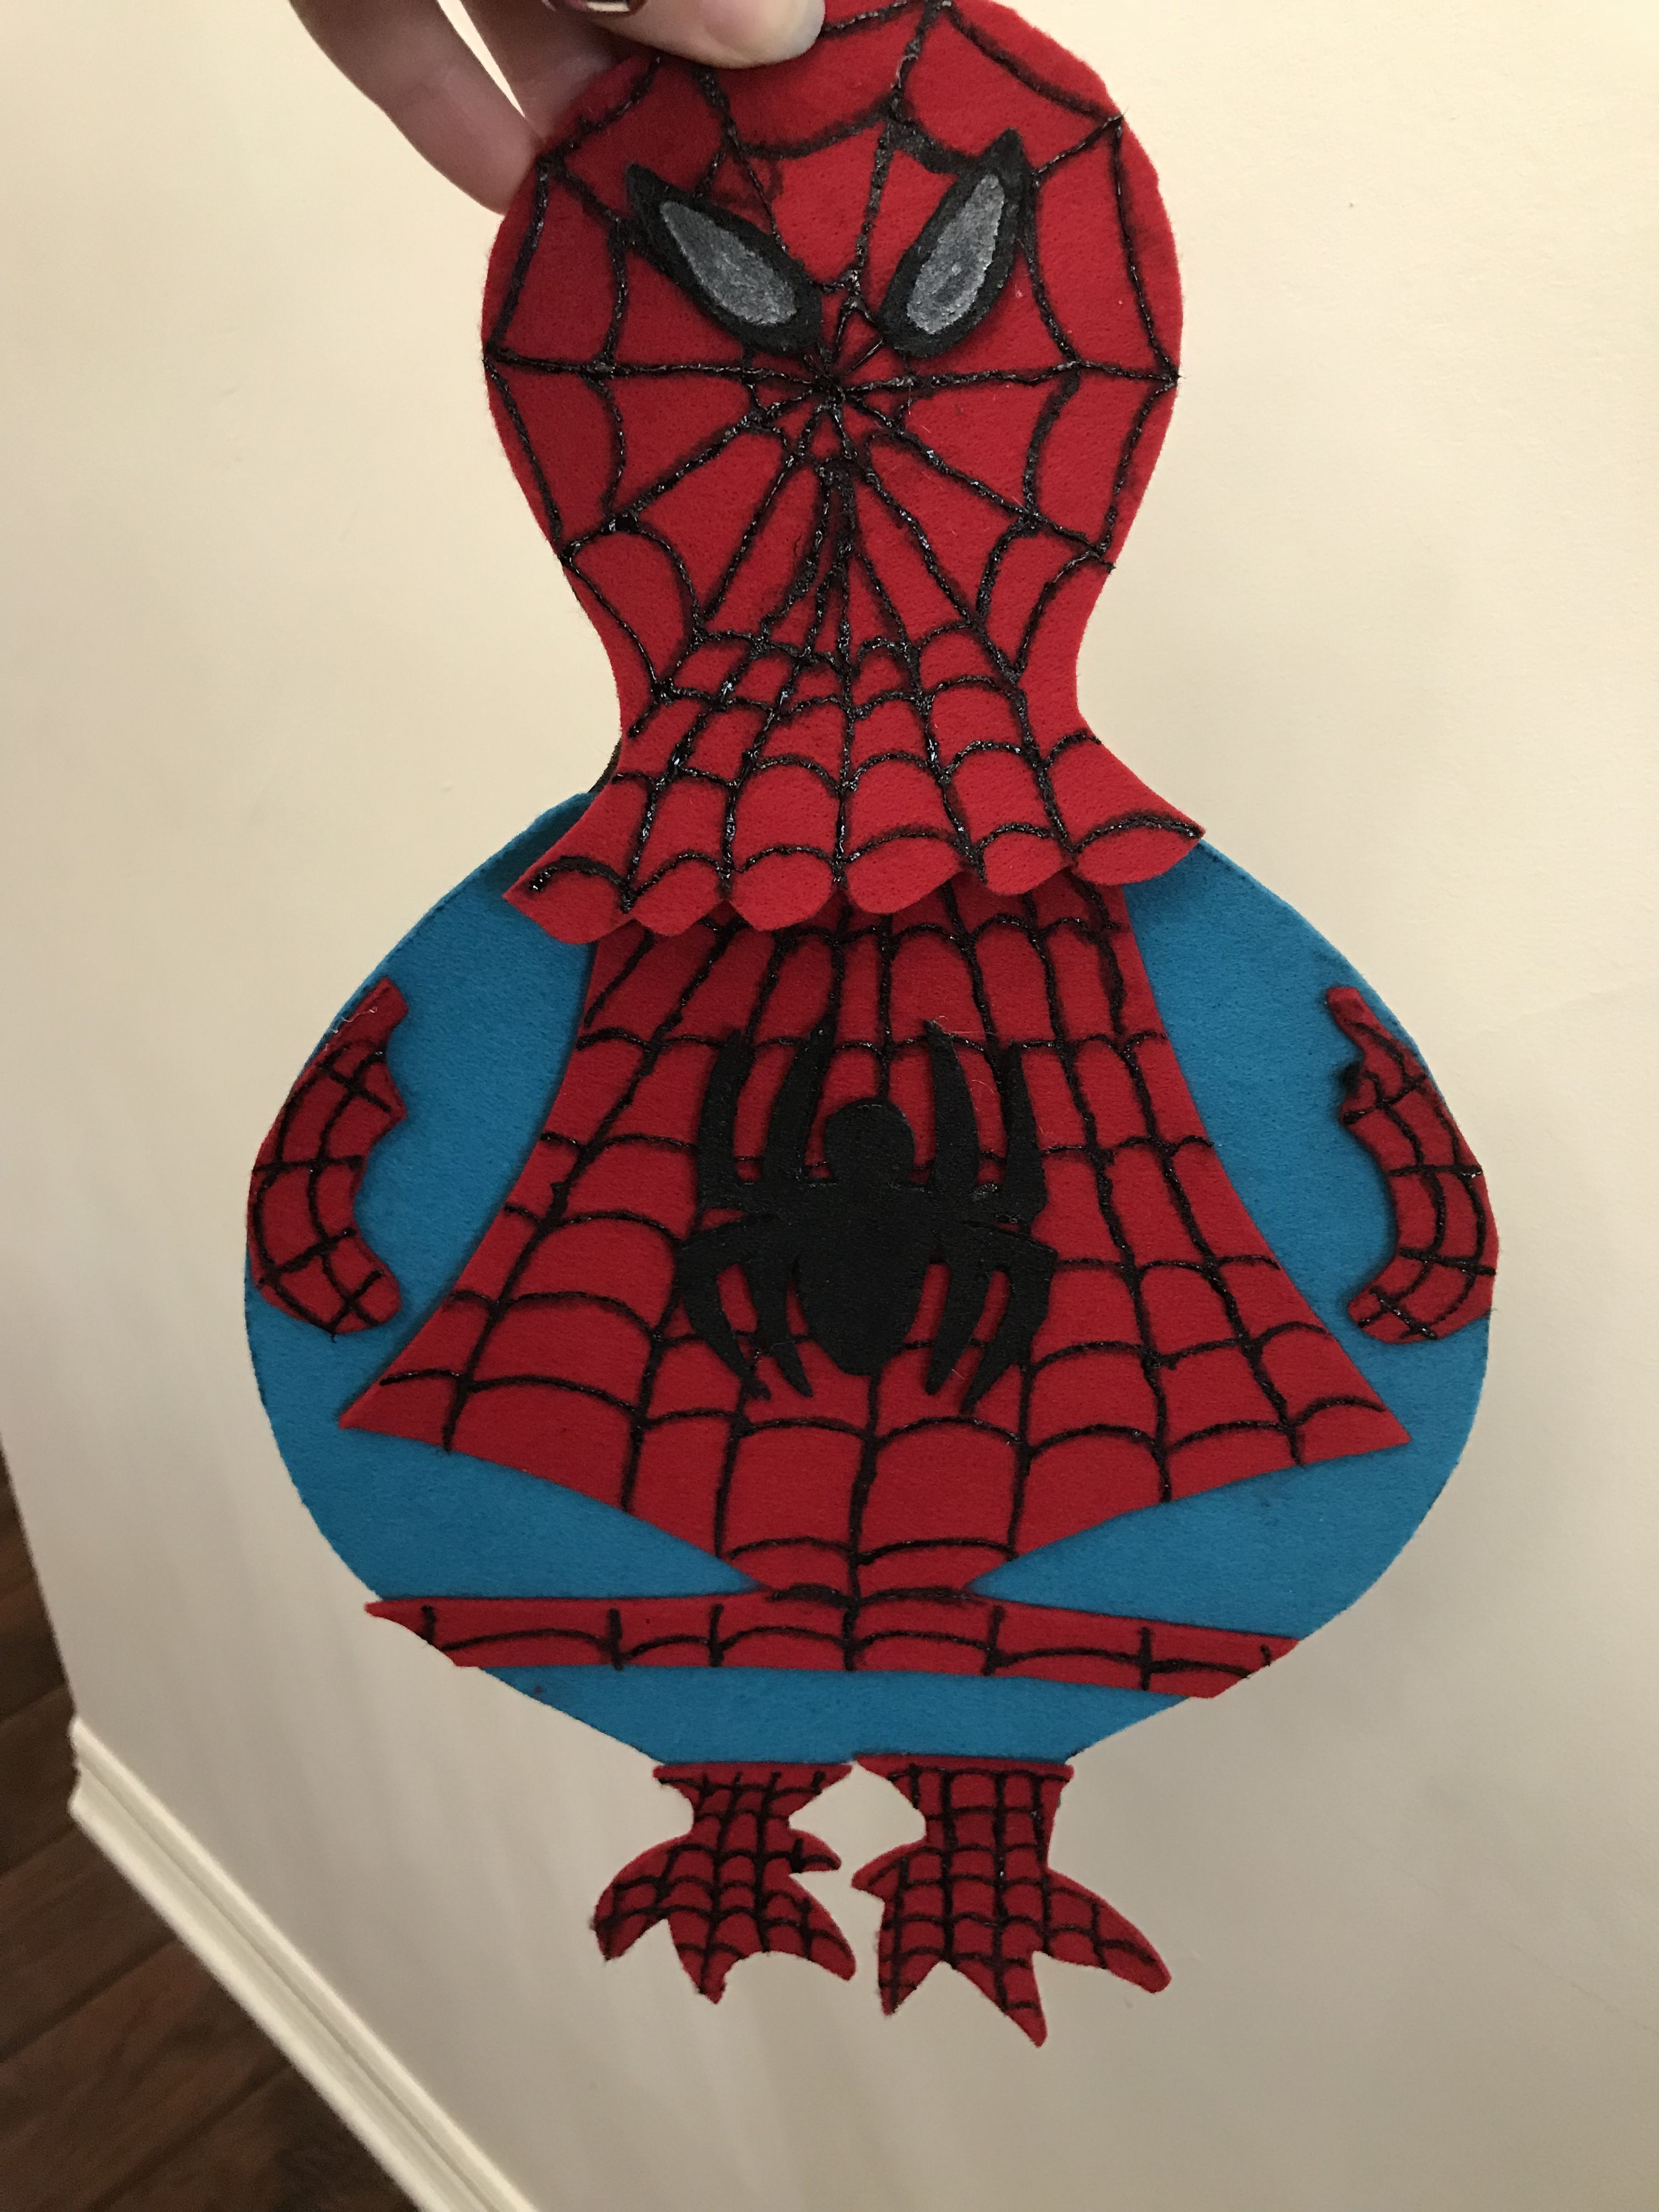 Tom The Turkey Disguise Spiderman For The Kids Turkey Disguise